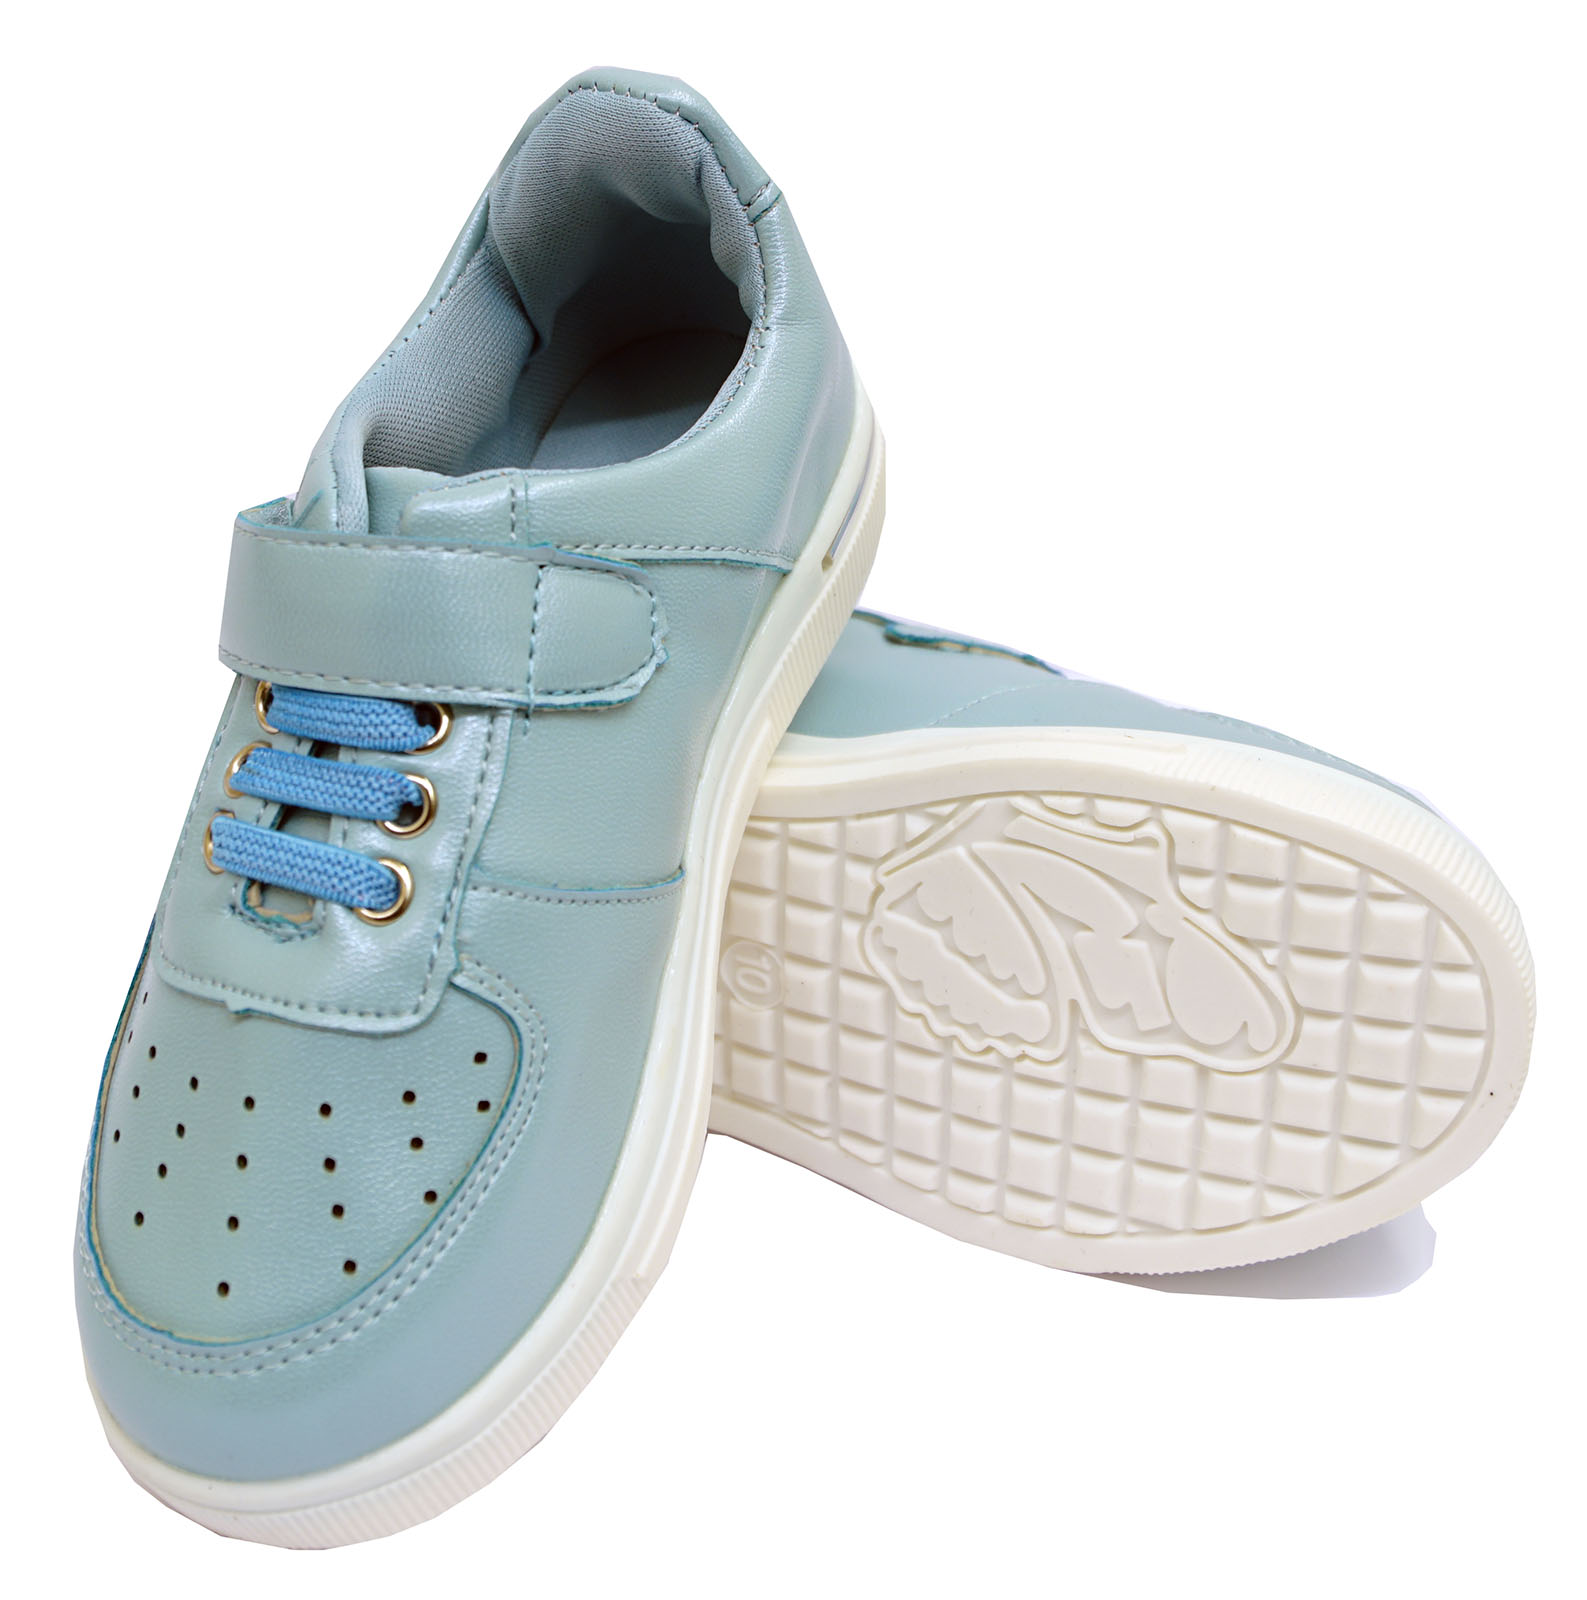 GIRLS KIDS CHILDRENS BLUE CASUAL SPORTS TRAINERS SHOES PLIMSOLL PUMPS SIZES 8-2